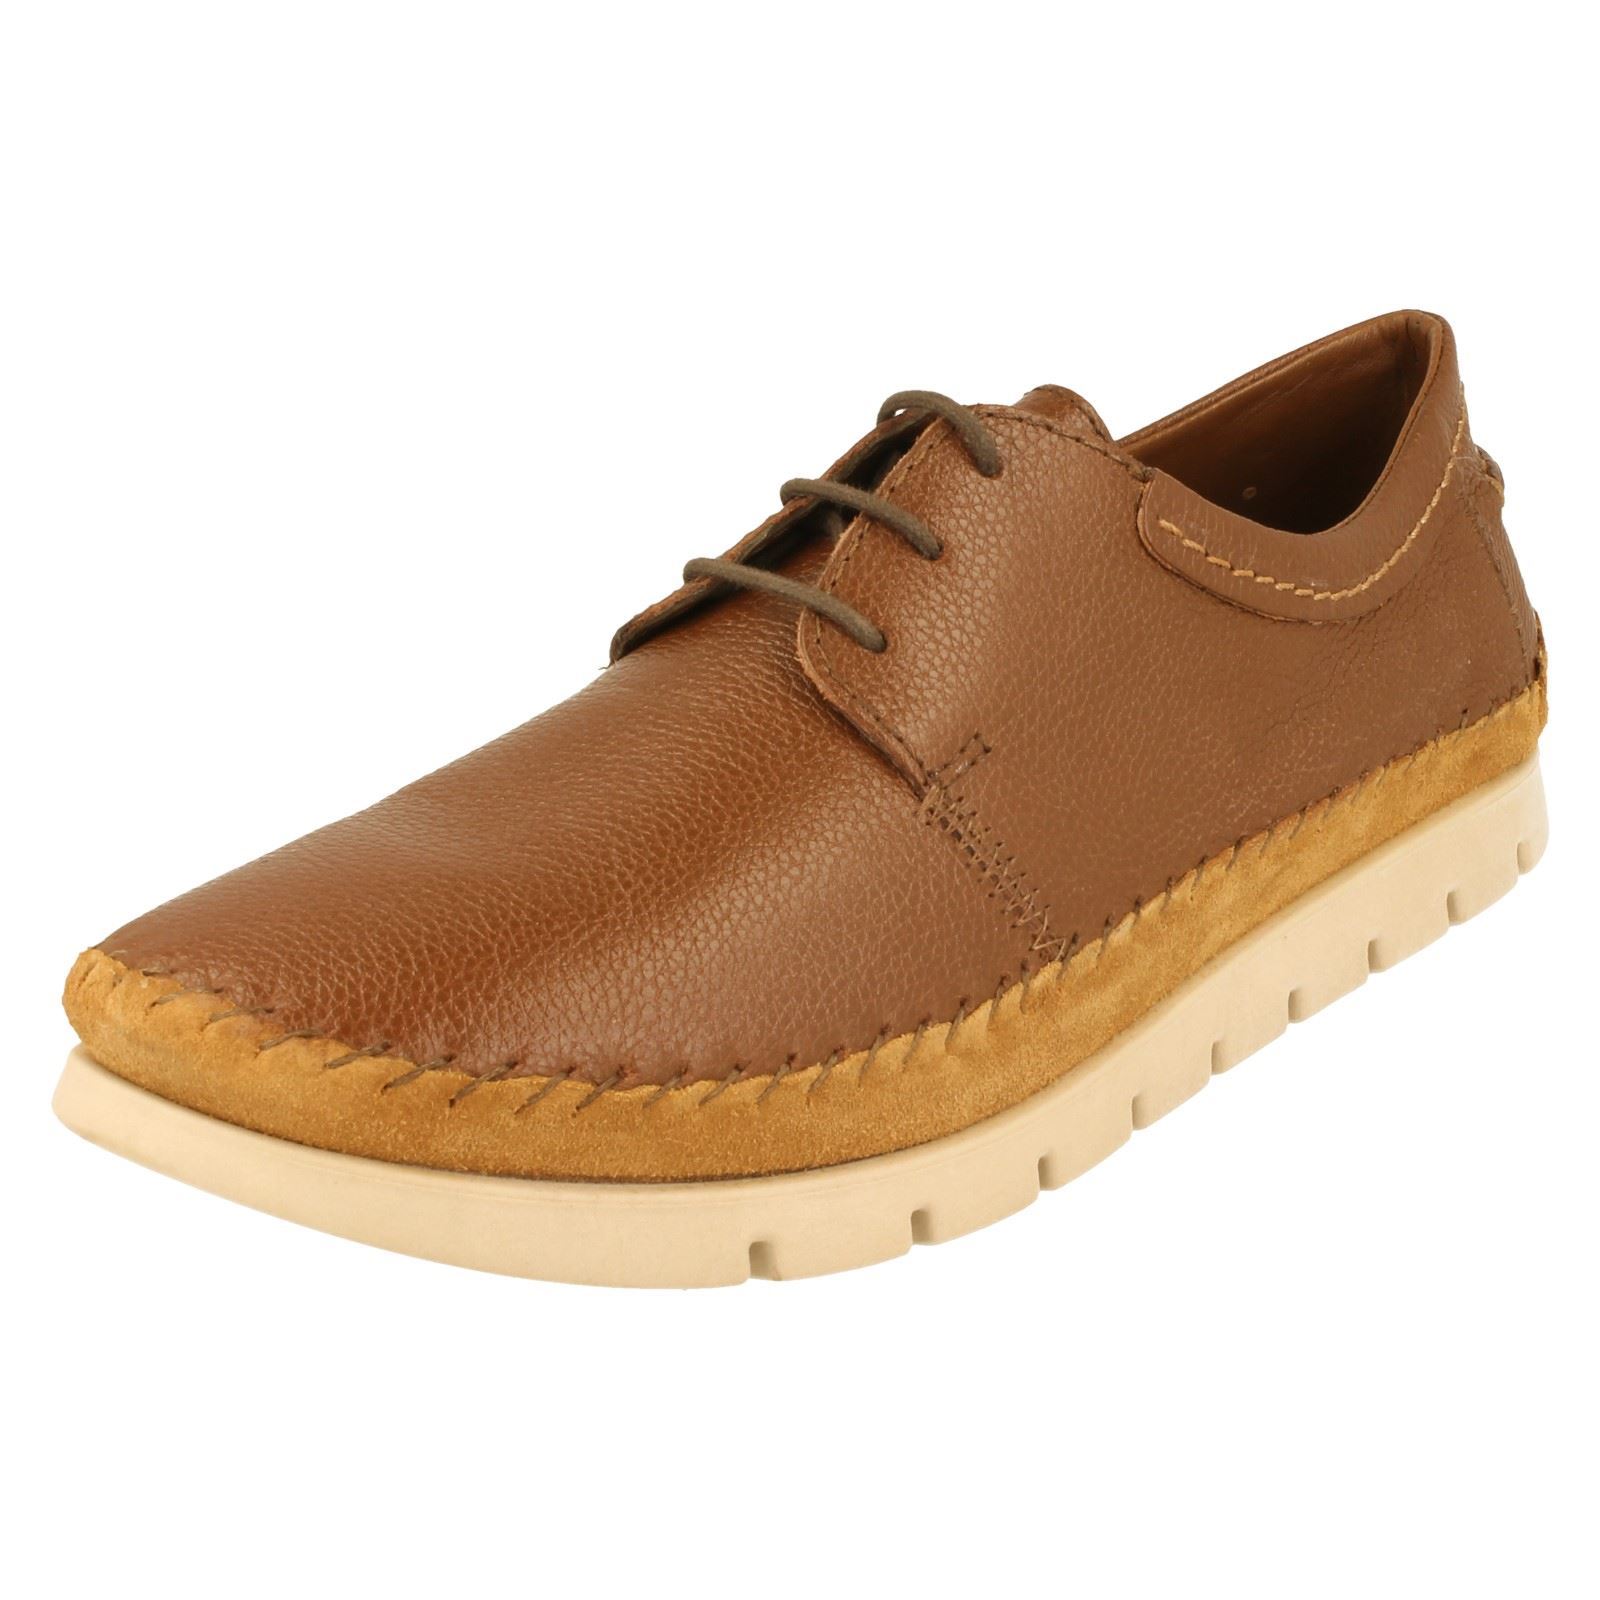 Uomo Style Padders Casual Schuhes The Style Uomo Travel-W 5d61ed